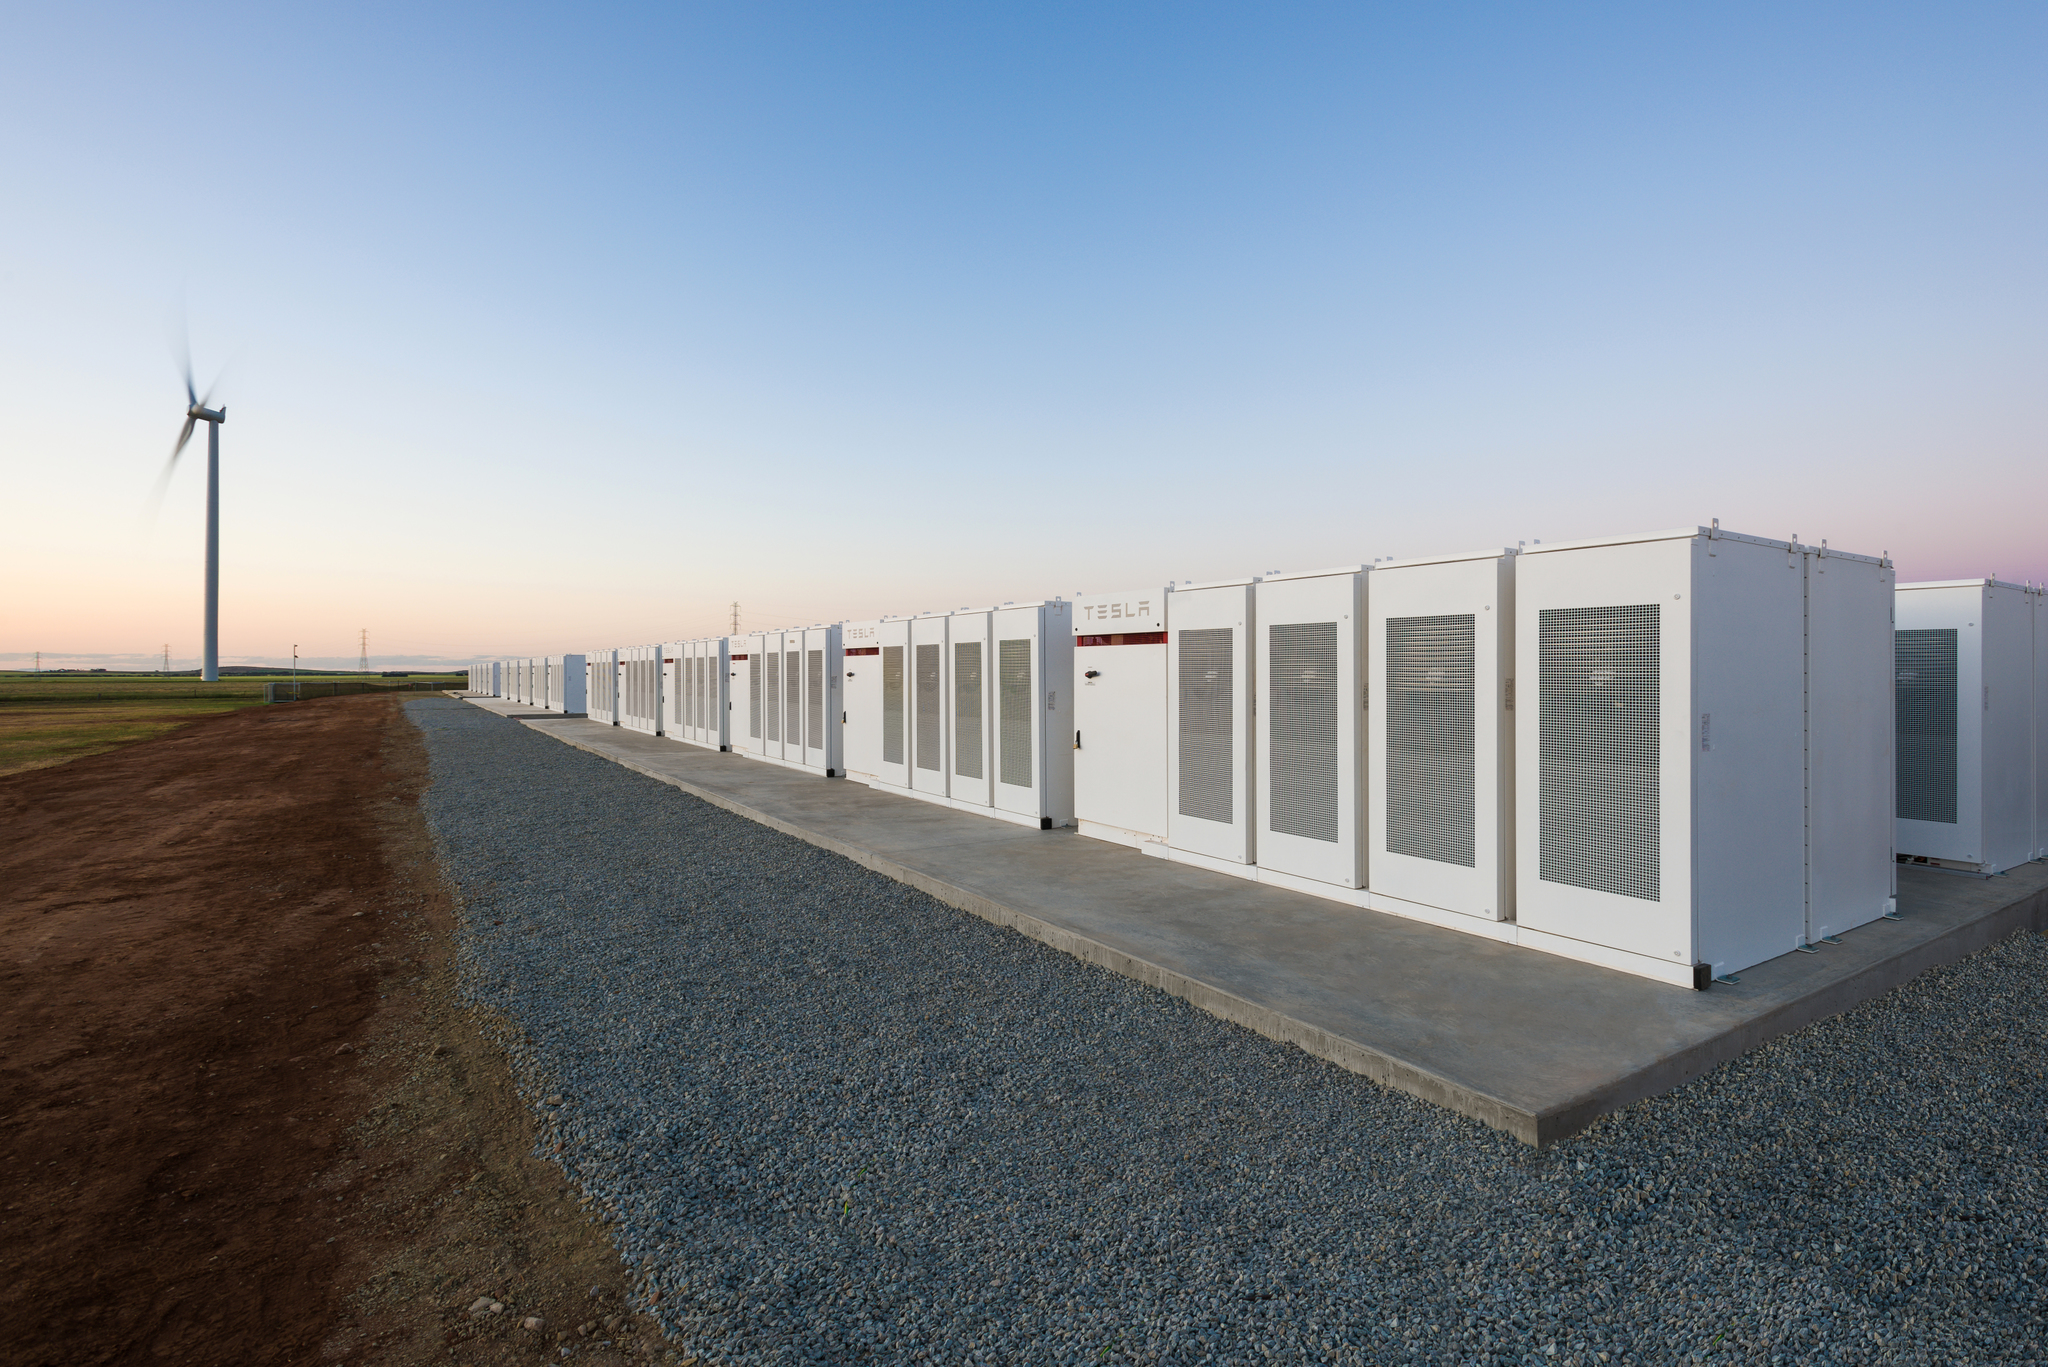 Tesla tests world's biggest battery